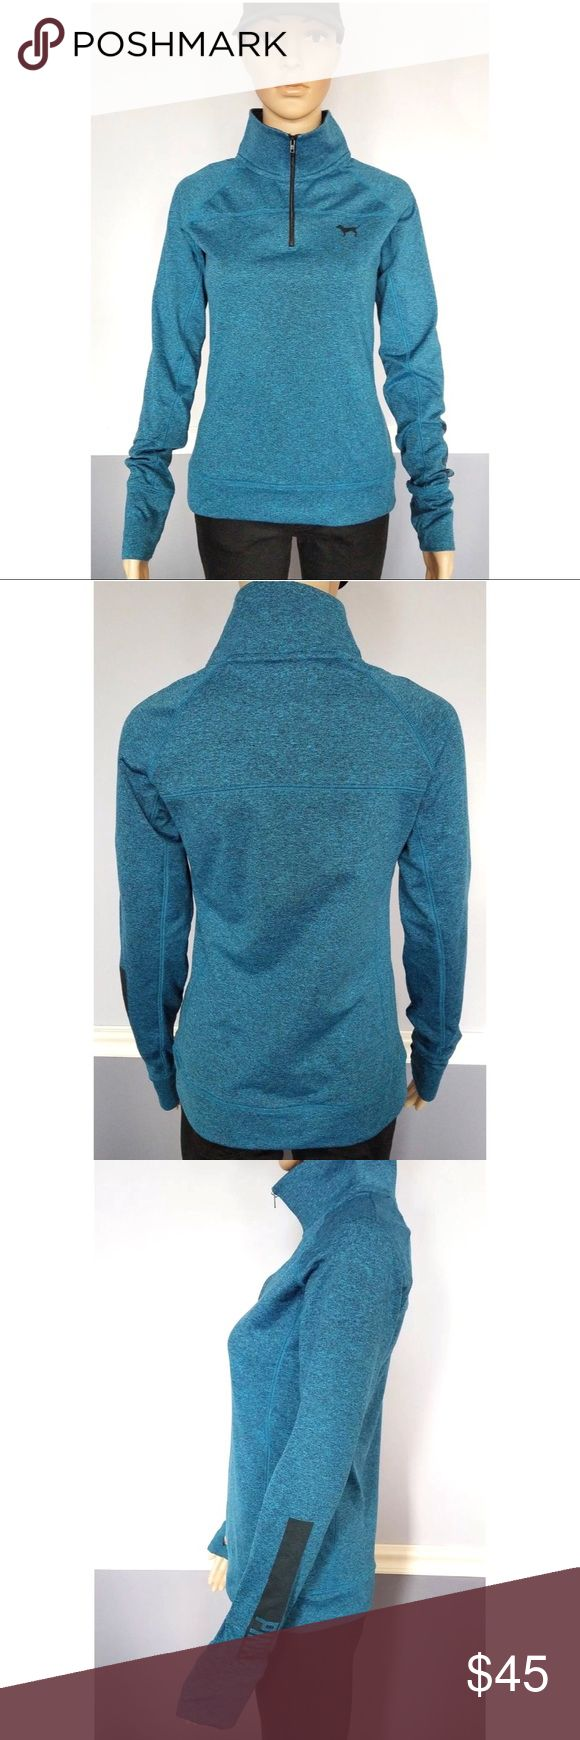 VS PINK Teal Heathered Thin Thermal Quarter Zip Women's VS PINK Teal Heathered ActiveWear Quarter Zip Sz S Excellent pre-owned condition. Quarter zip. 90% polyester 10% elastane Thin, but inside is soft, fleece like. Teal blue color with a heathered pattern. PINK logo on one sleeve. Has thumb holes Great for chilly runs outside. PINK Victoria's Secret Tops Sweatshirts & Hoodies